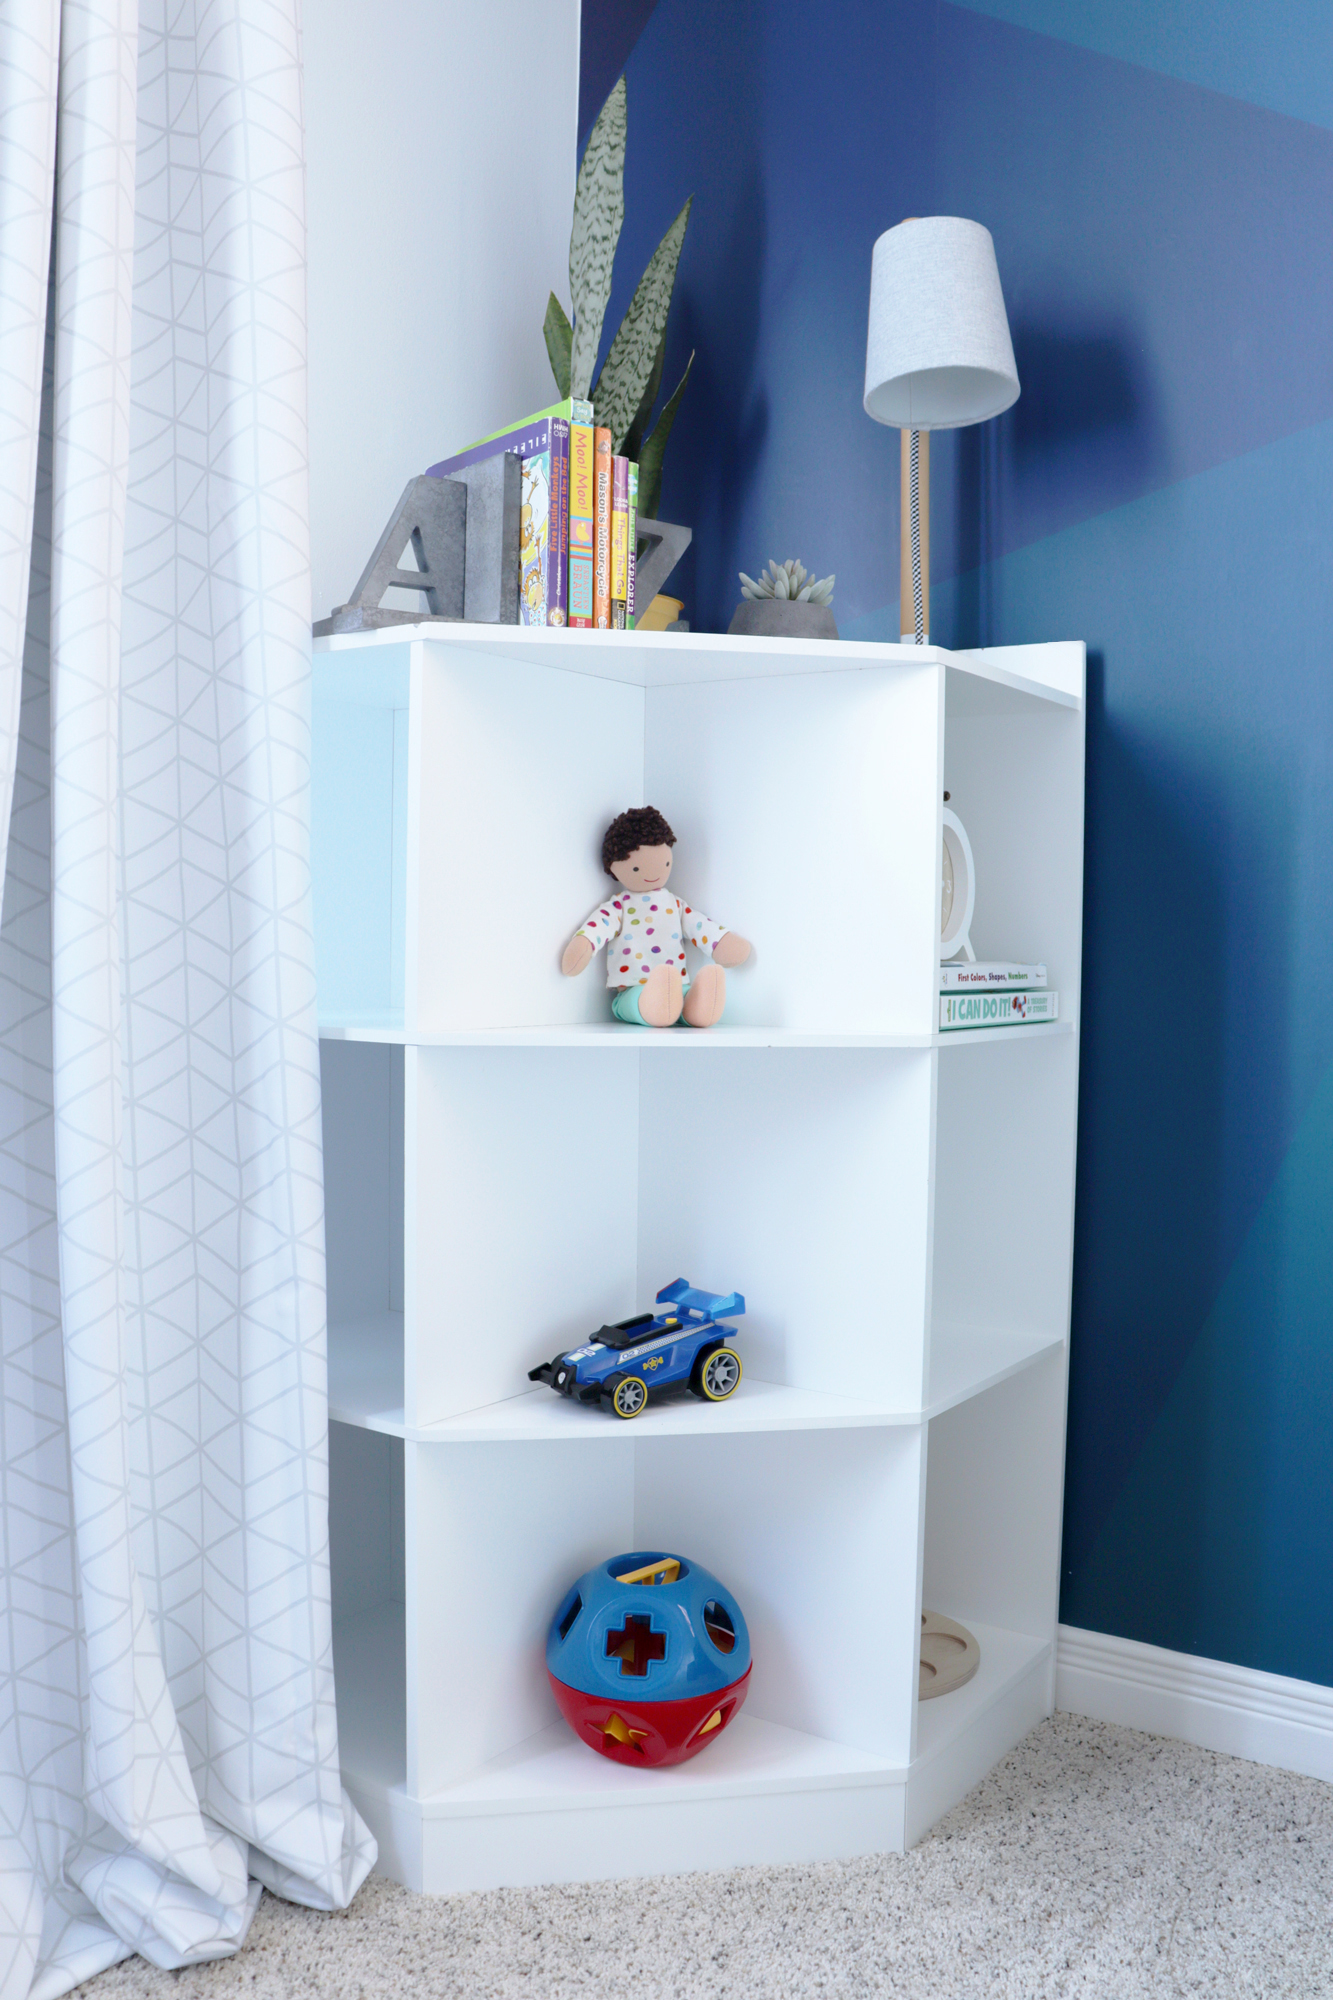 Corner shelf provides a cute storage solution for books, toys and other accents